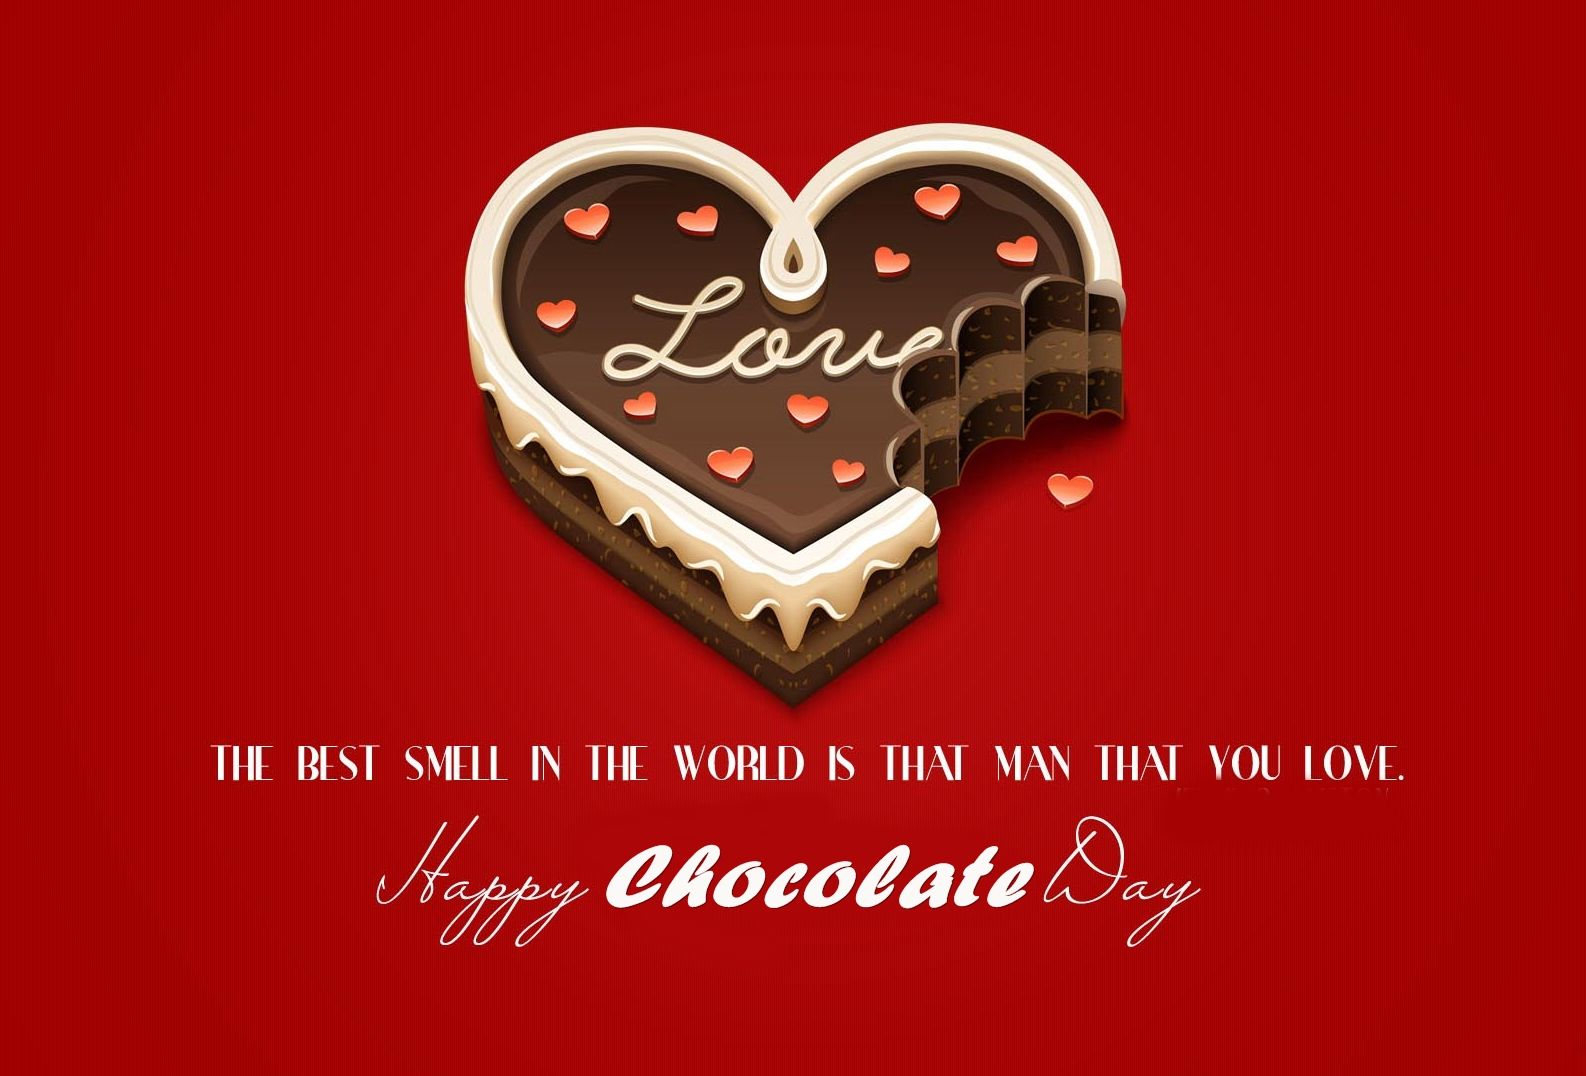 Valentines Day Love Quotes Get Happy Chocolate Day Love Quotes For Your Love Girlfriend Or